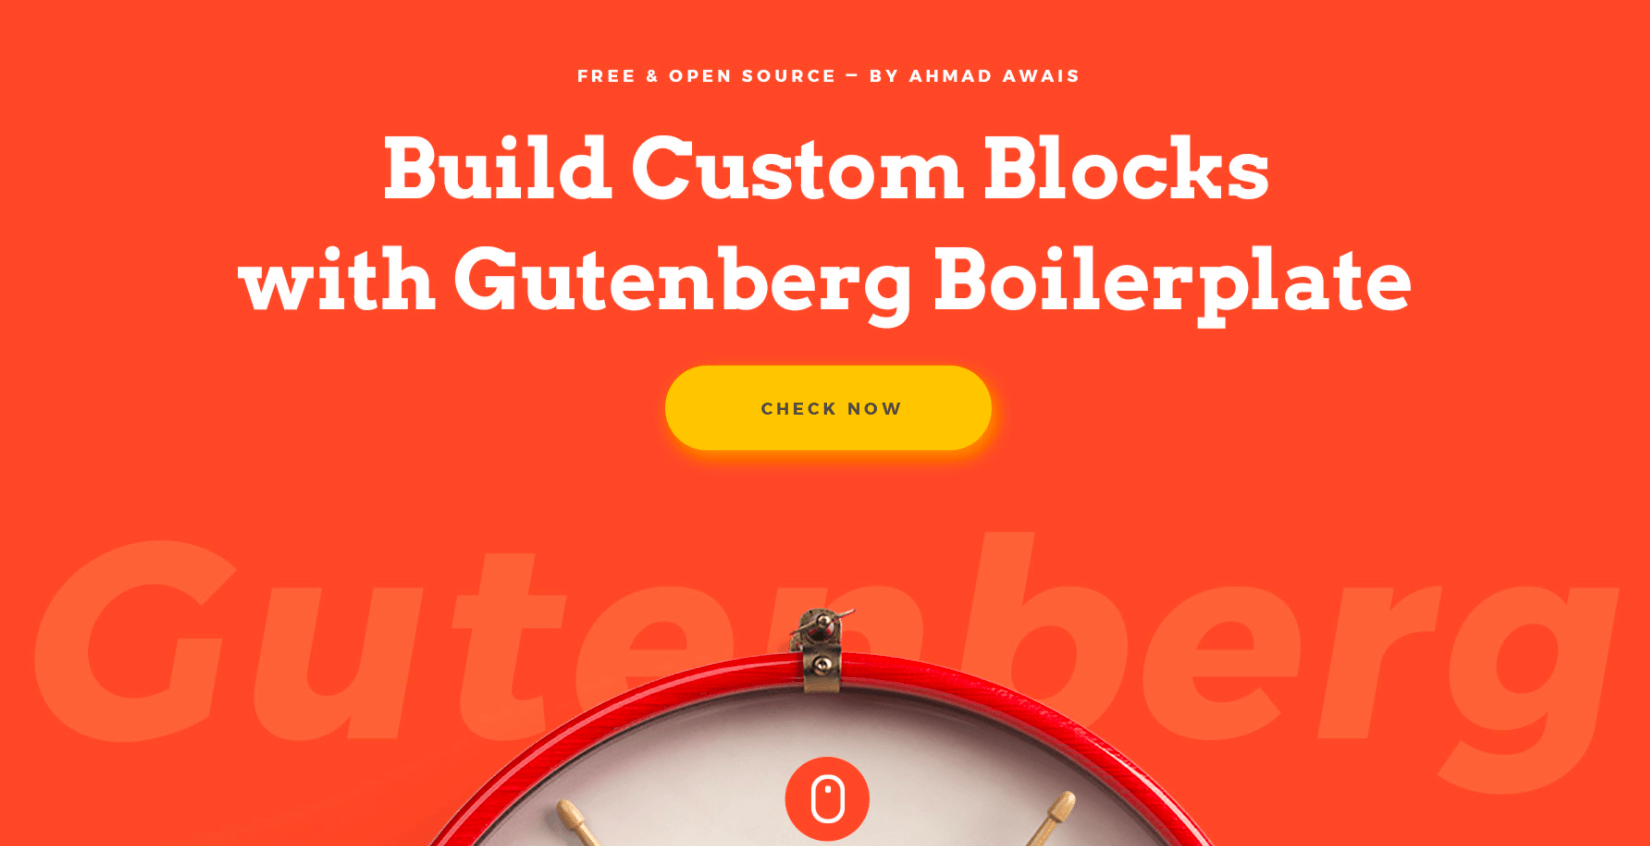 Gutenberg boilerplate project welcome graphics